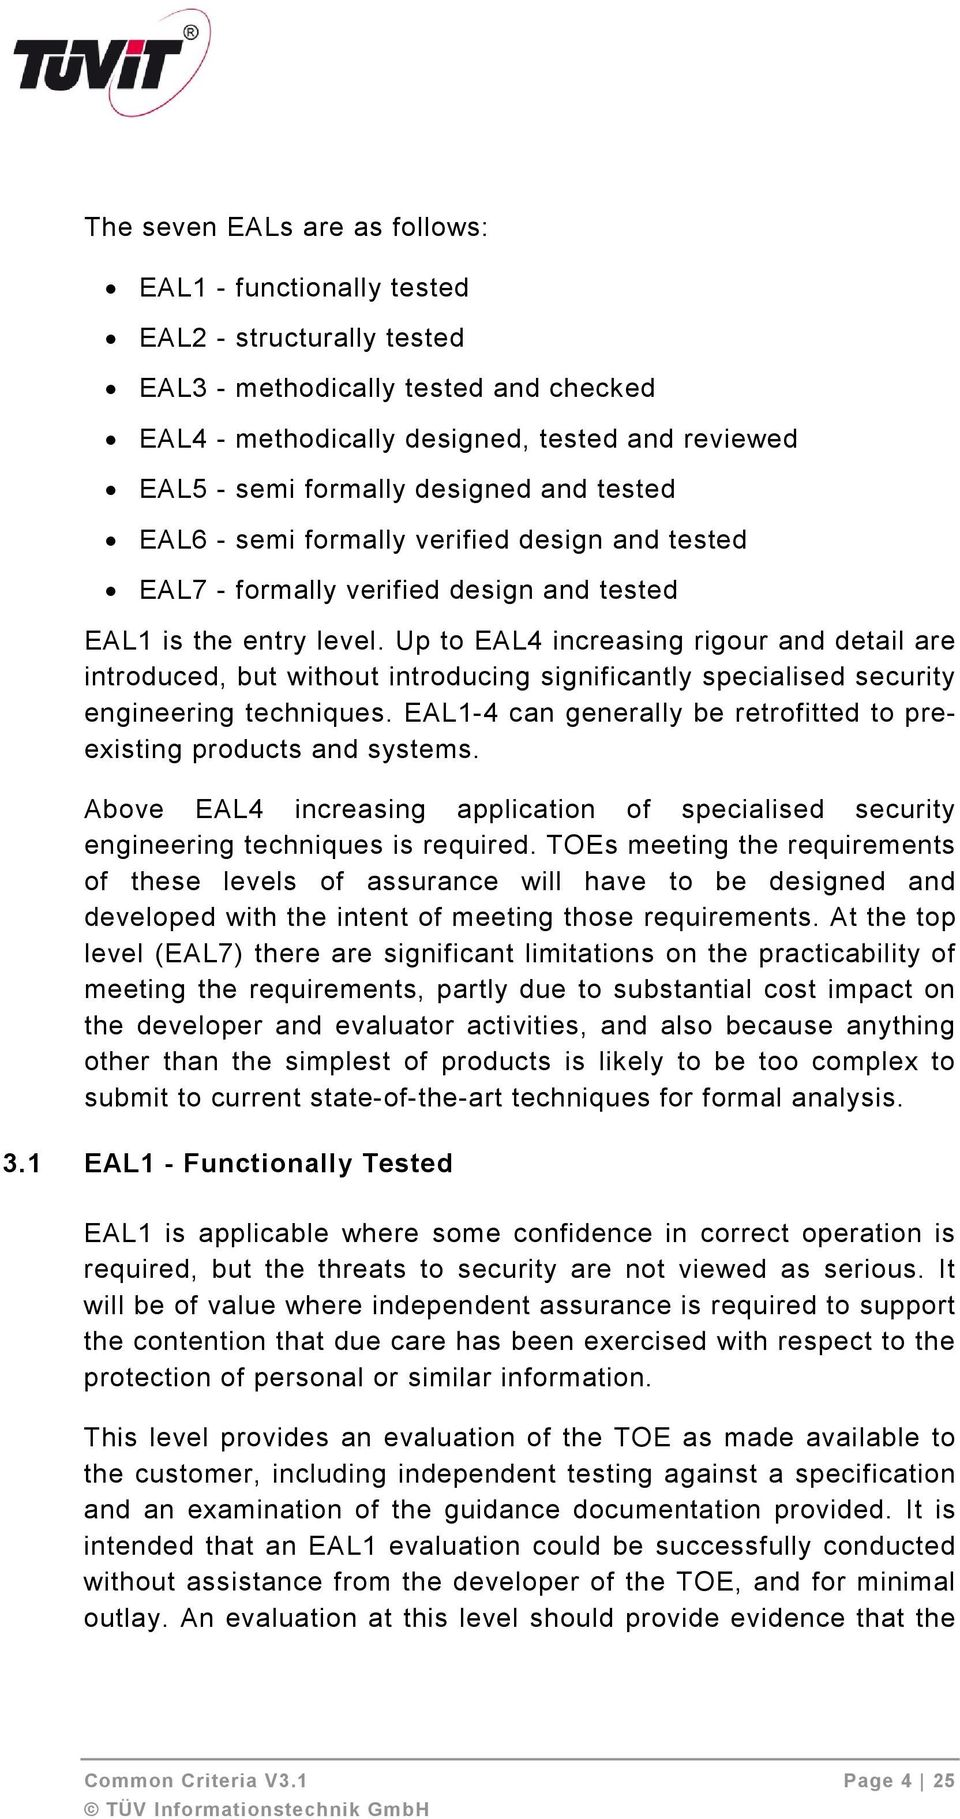 Up to EAL4 increasing rigour and detail are introduced, but without introducing significantly specialised security engineering techniques.